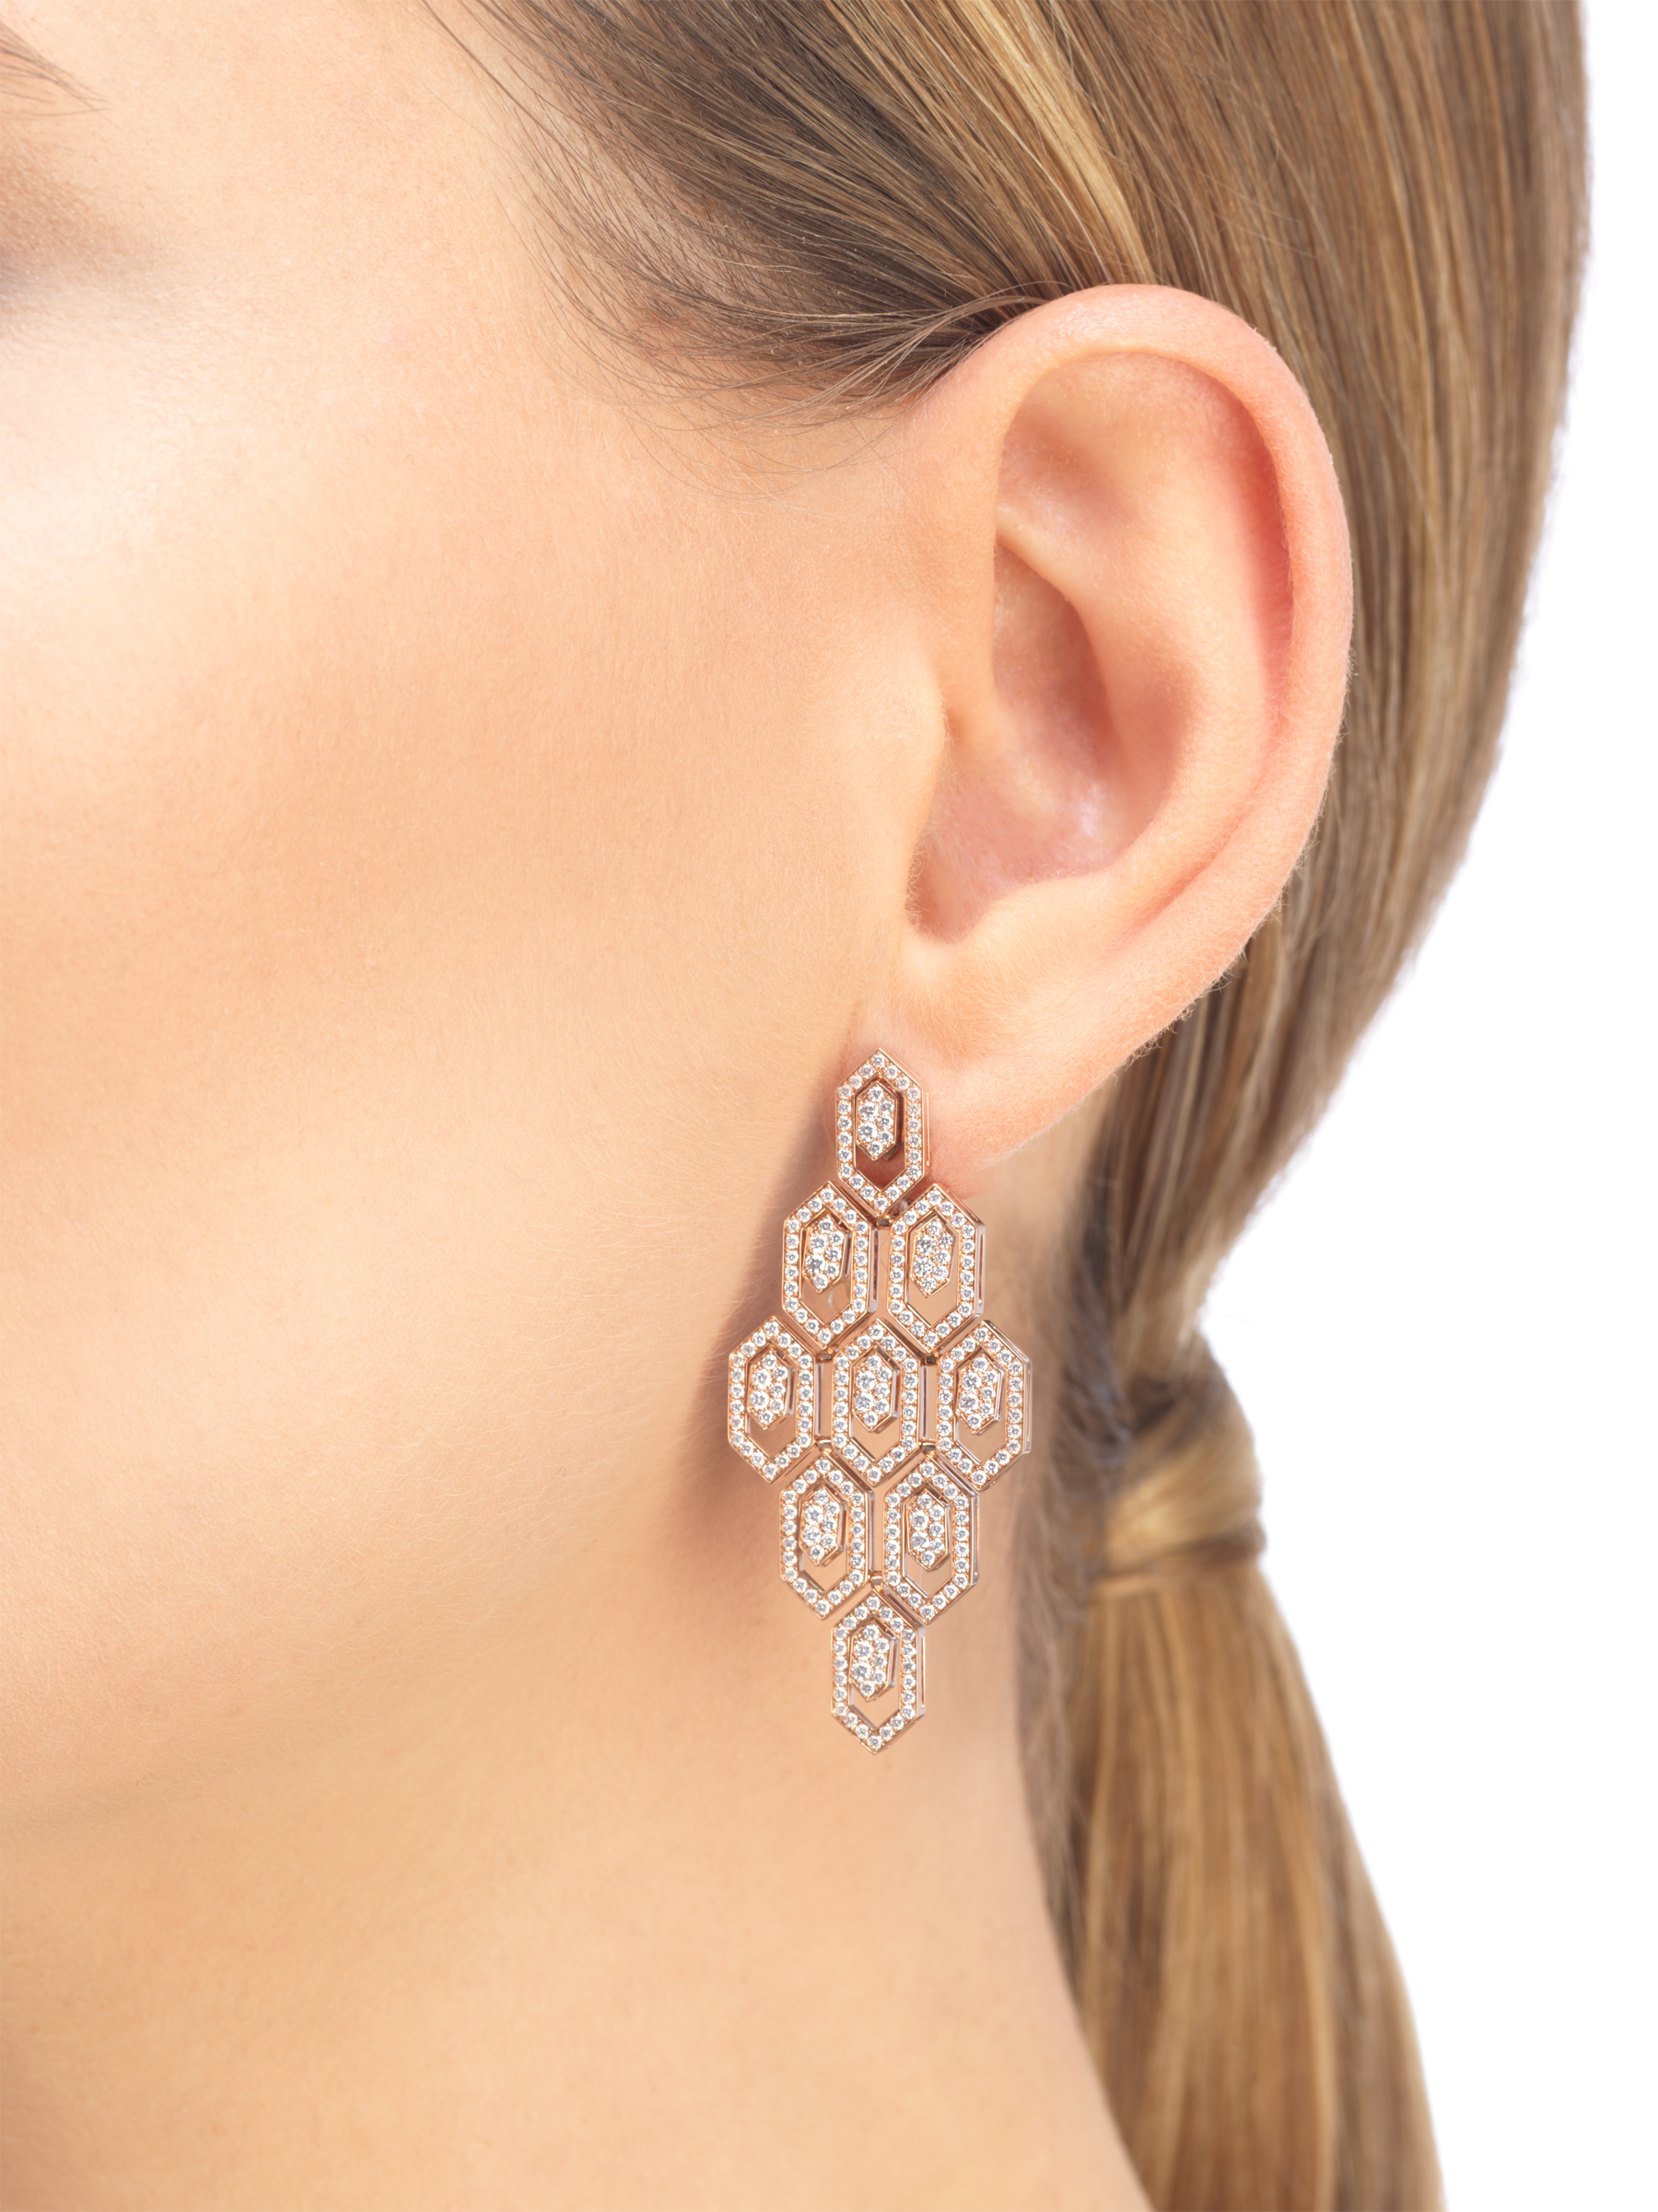 Serpenti 18 kt rose gold earrings set with pavé diamonds. 356507 image 4